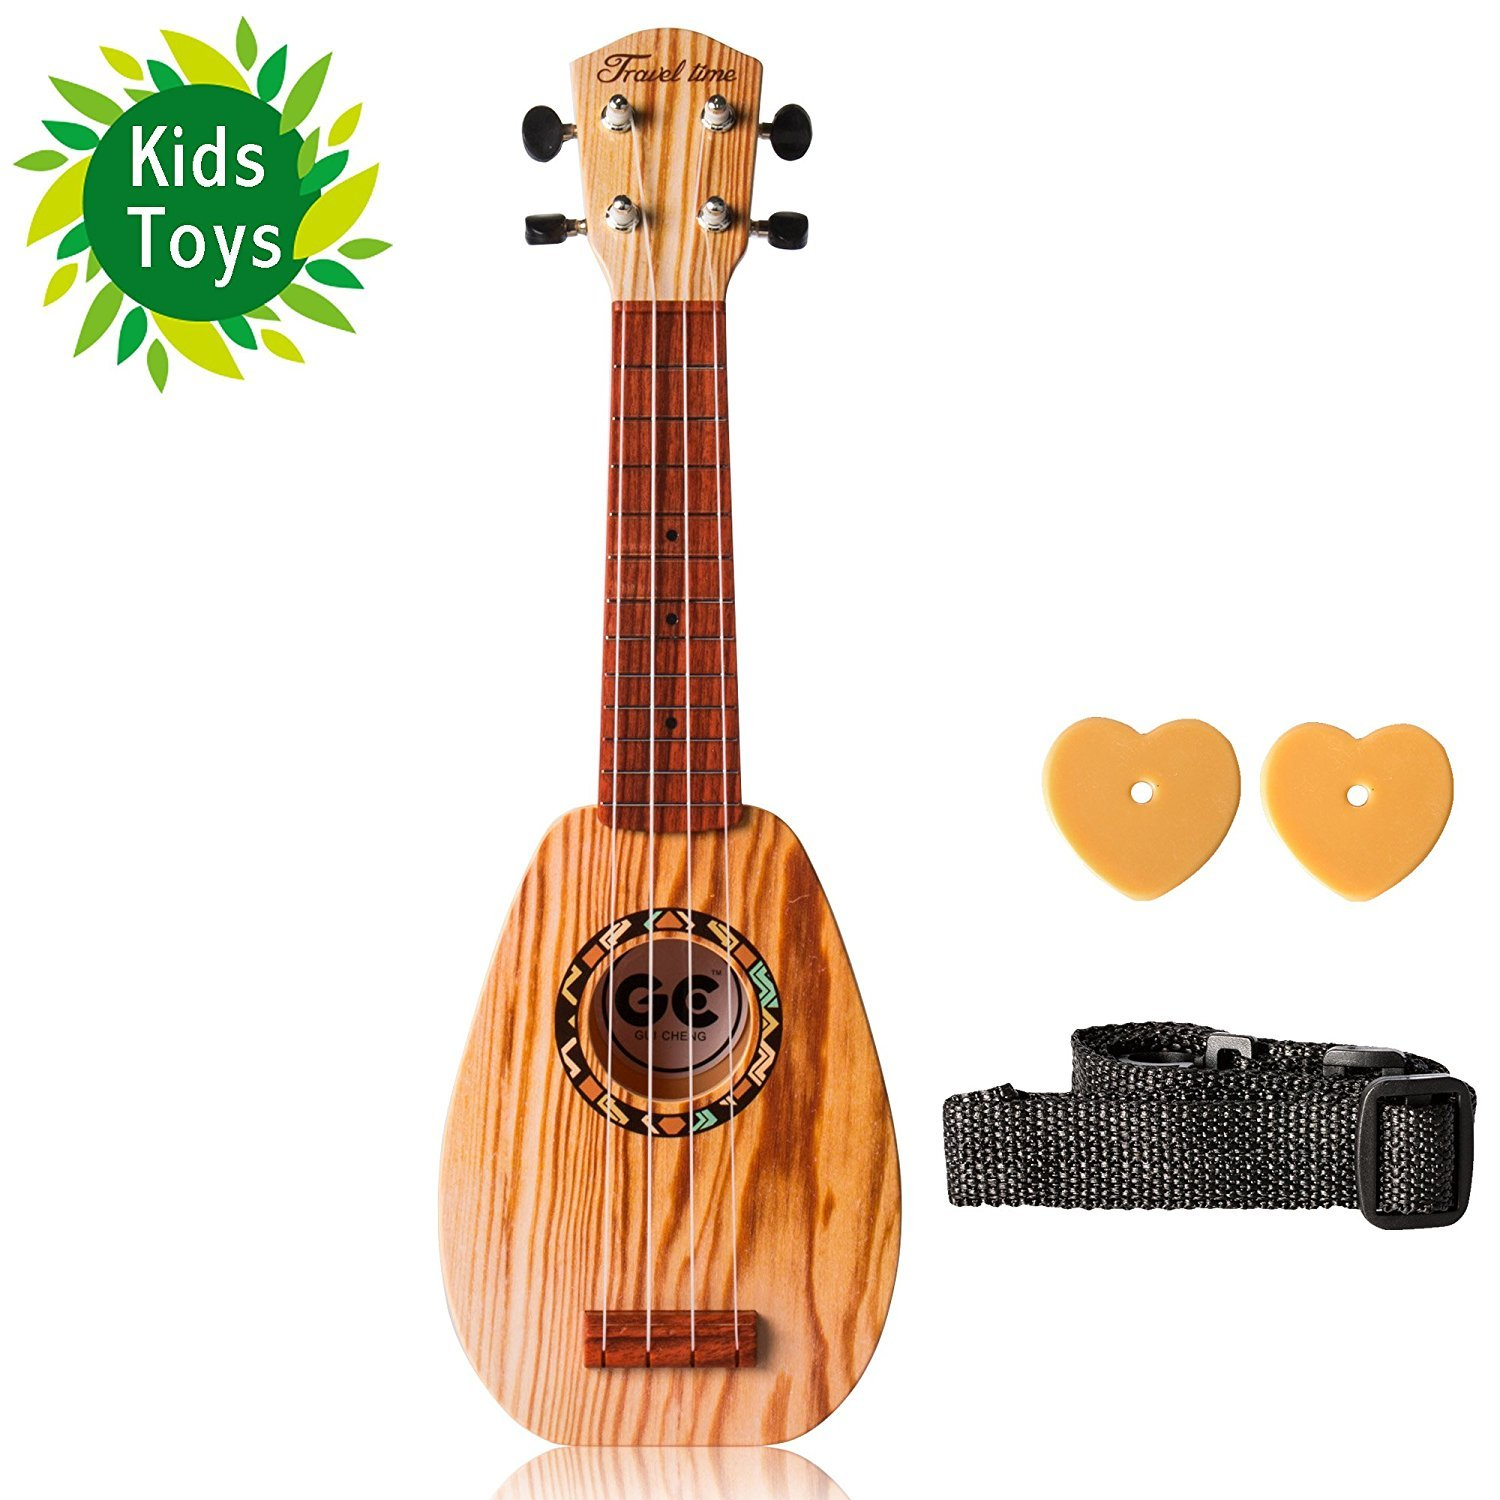 IBUYTOP Soprano Ukulele 17-inch Guitar Toy for Kids With the Picks and Strap Musical Instruments,Symphony Guitar ST Technology